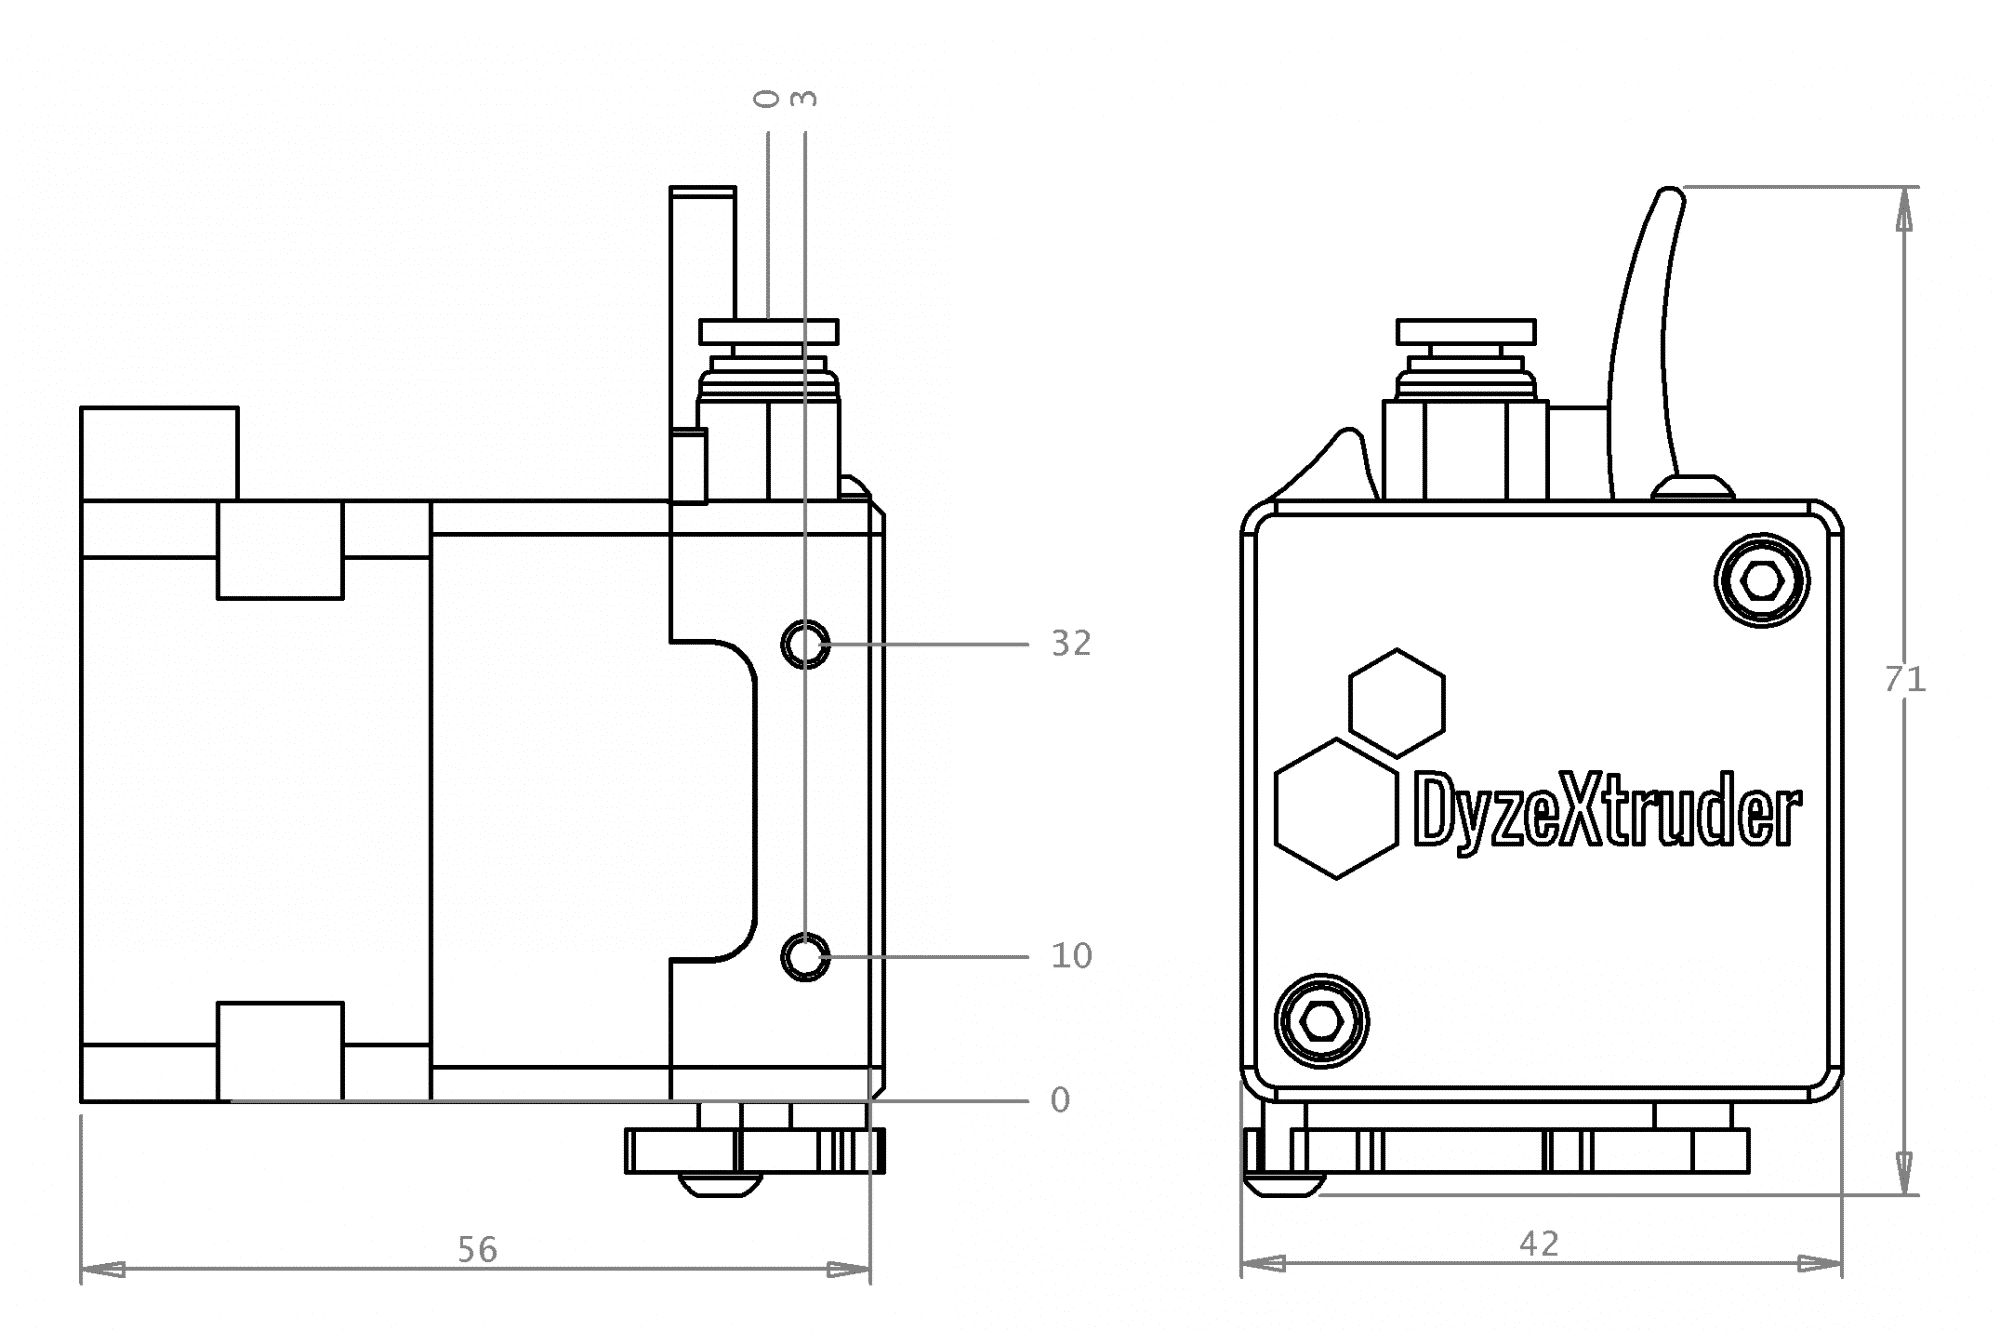 DyzeXtruder-GT Drawings